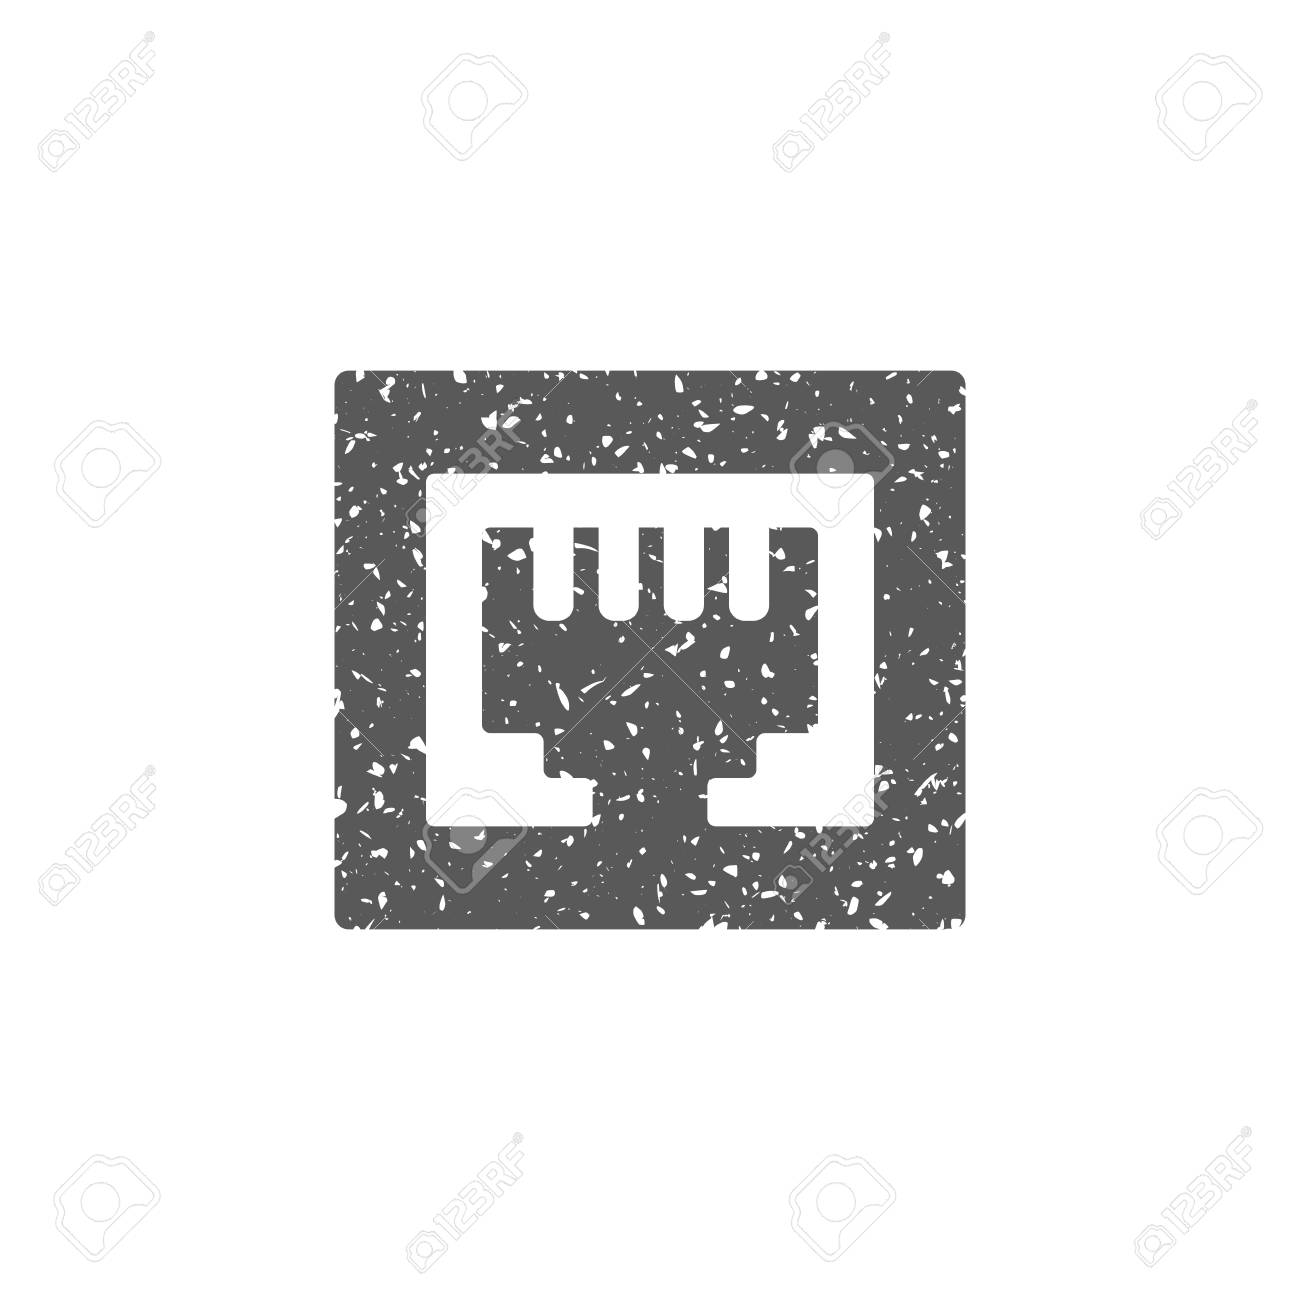 Local area connector icon in grunge texture. Vintage style vector illustration. - 105574576